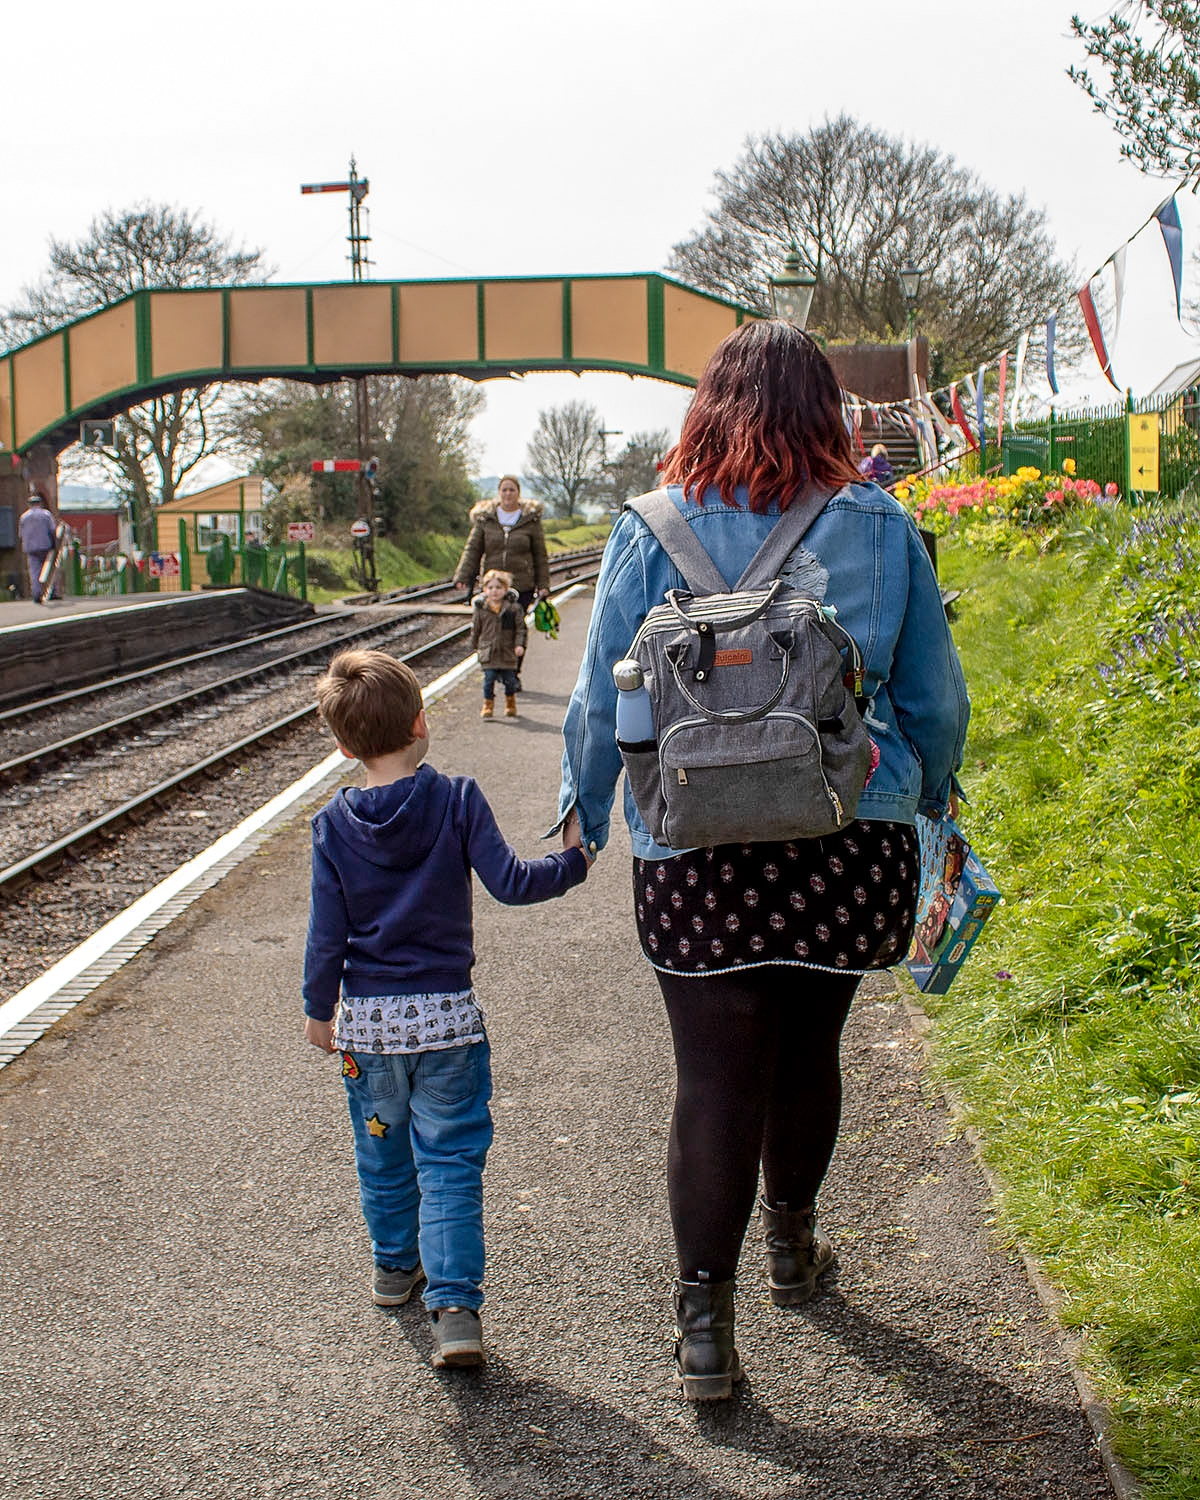 Luke and I at Ropley station during the Watercress Line's Day Out With Thomas Easter event. Read full review at https://lukeosaurusandme.co.uk